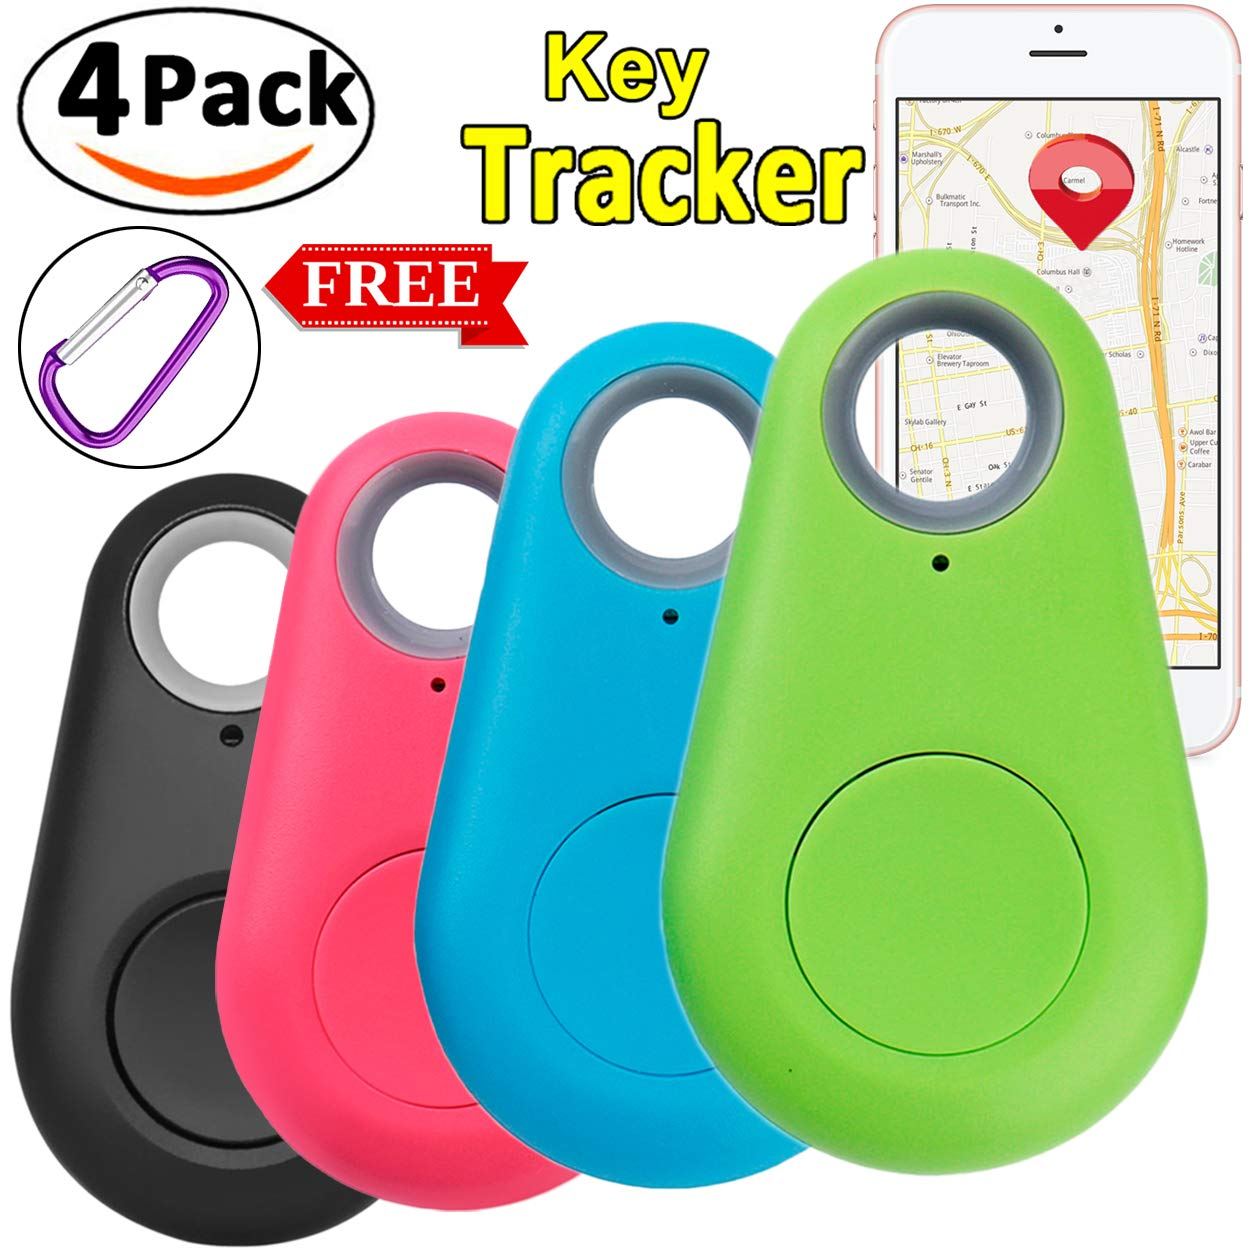 4 Pack Smart GPS Tracker Key Finder Locator Wireless Anti Lost Alarm Sensor Device for Kids Dogs Car Wallet Pets Cats Motorcycles Luggage with FREE 4 Carabiner Smart Phone Selfie Shutter iOS Android